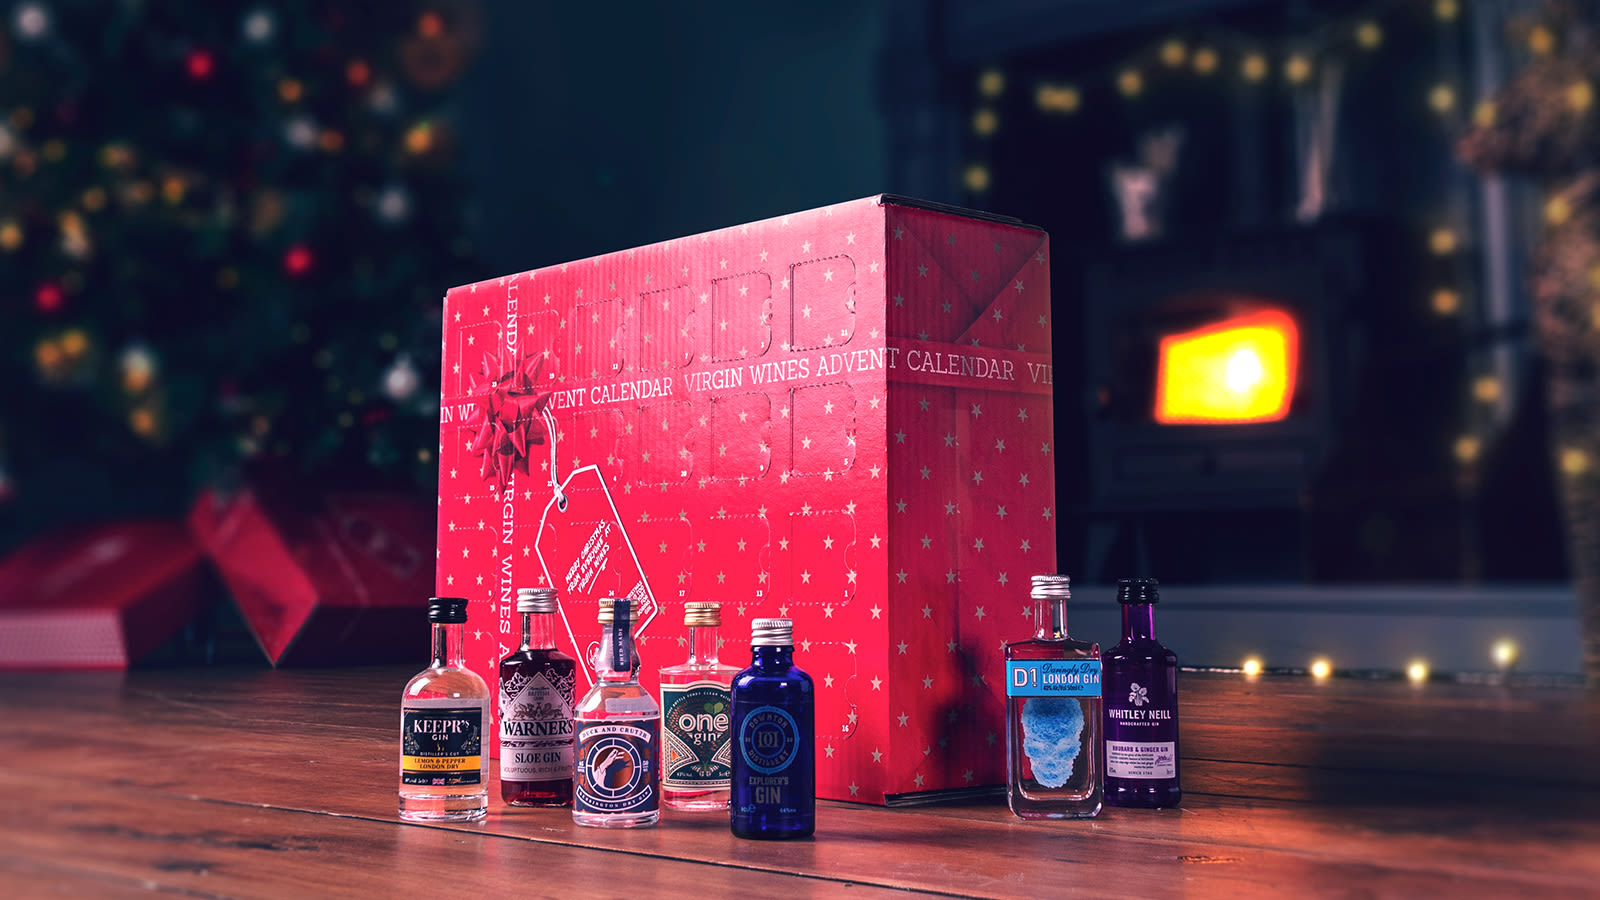 A red Virgin Wines advent calendar with seven small bottles of gin